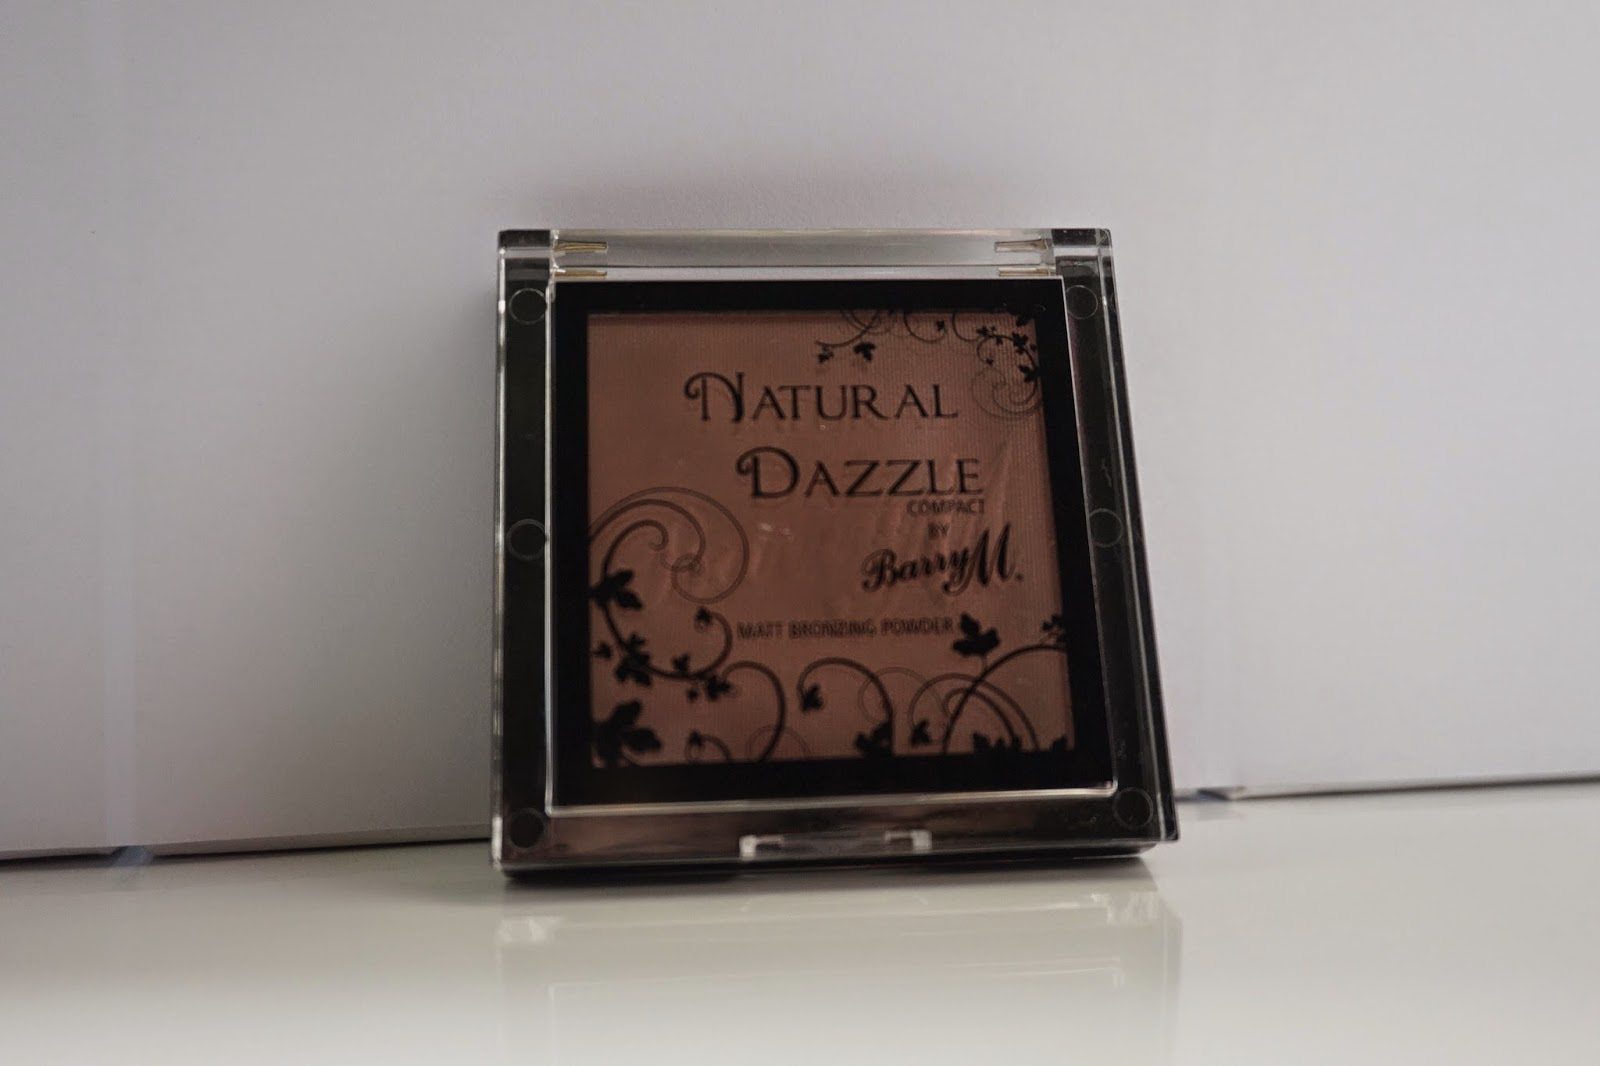 Barry M Natural Dazzle Matt Bronzing Powder Compact - Dusty Foxes Beauty Blog